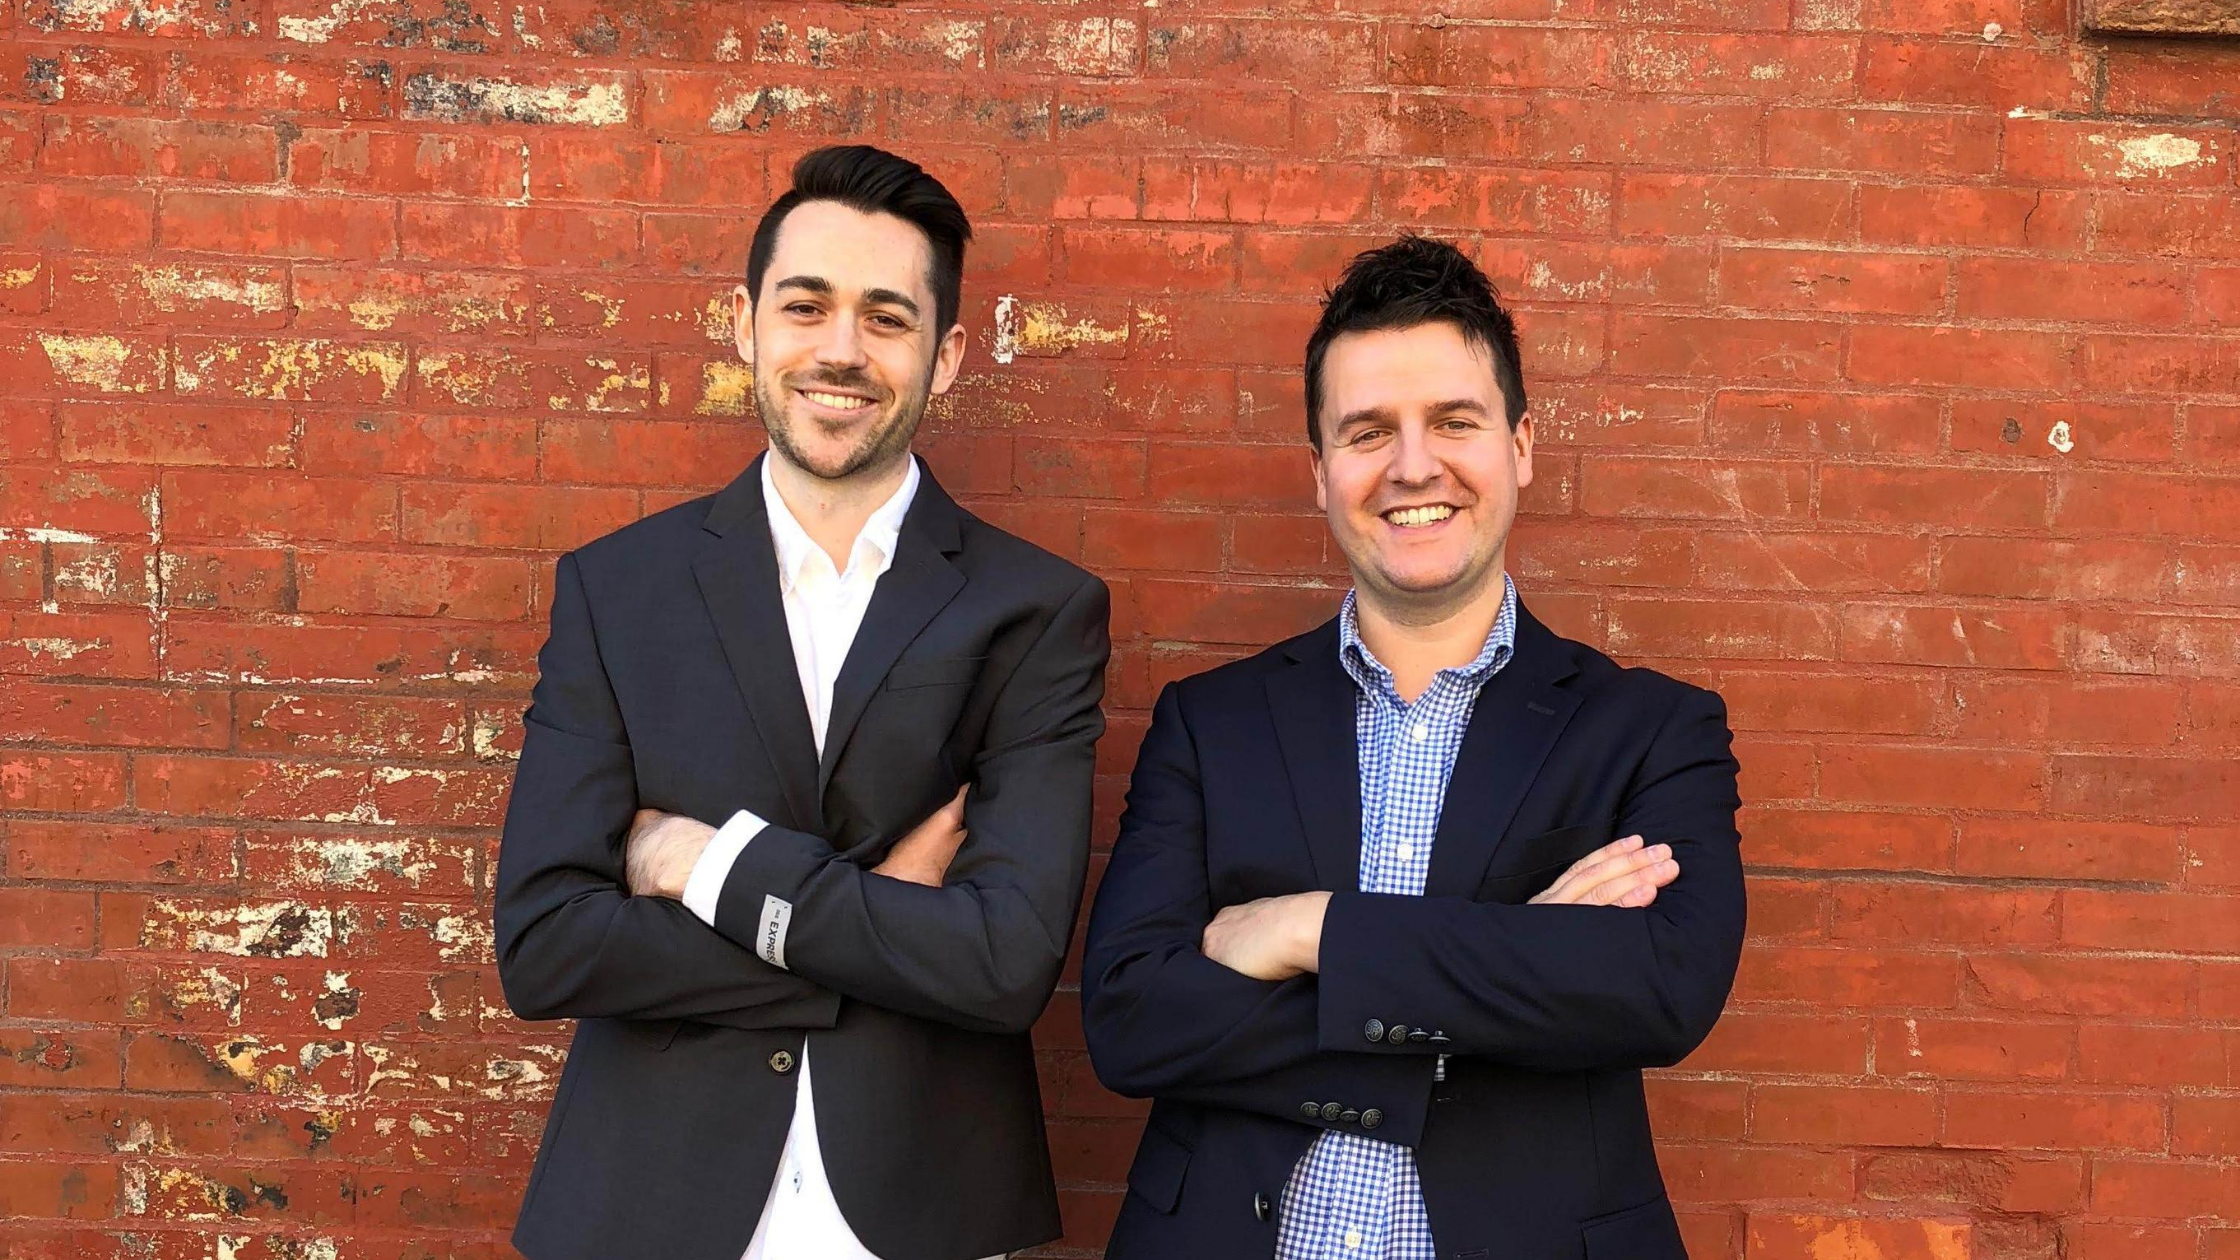 Pitchly completes $2.5m investment